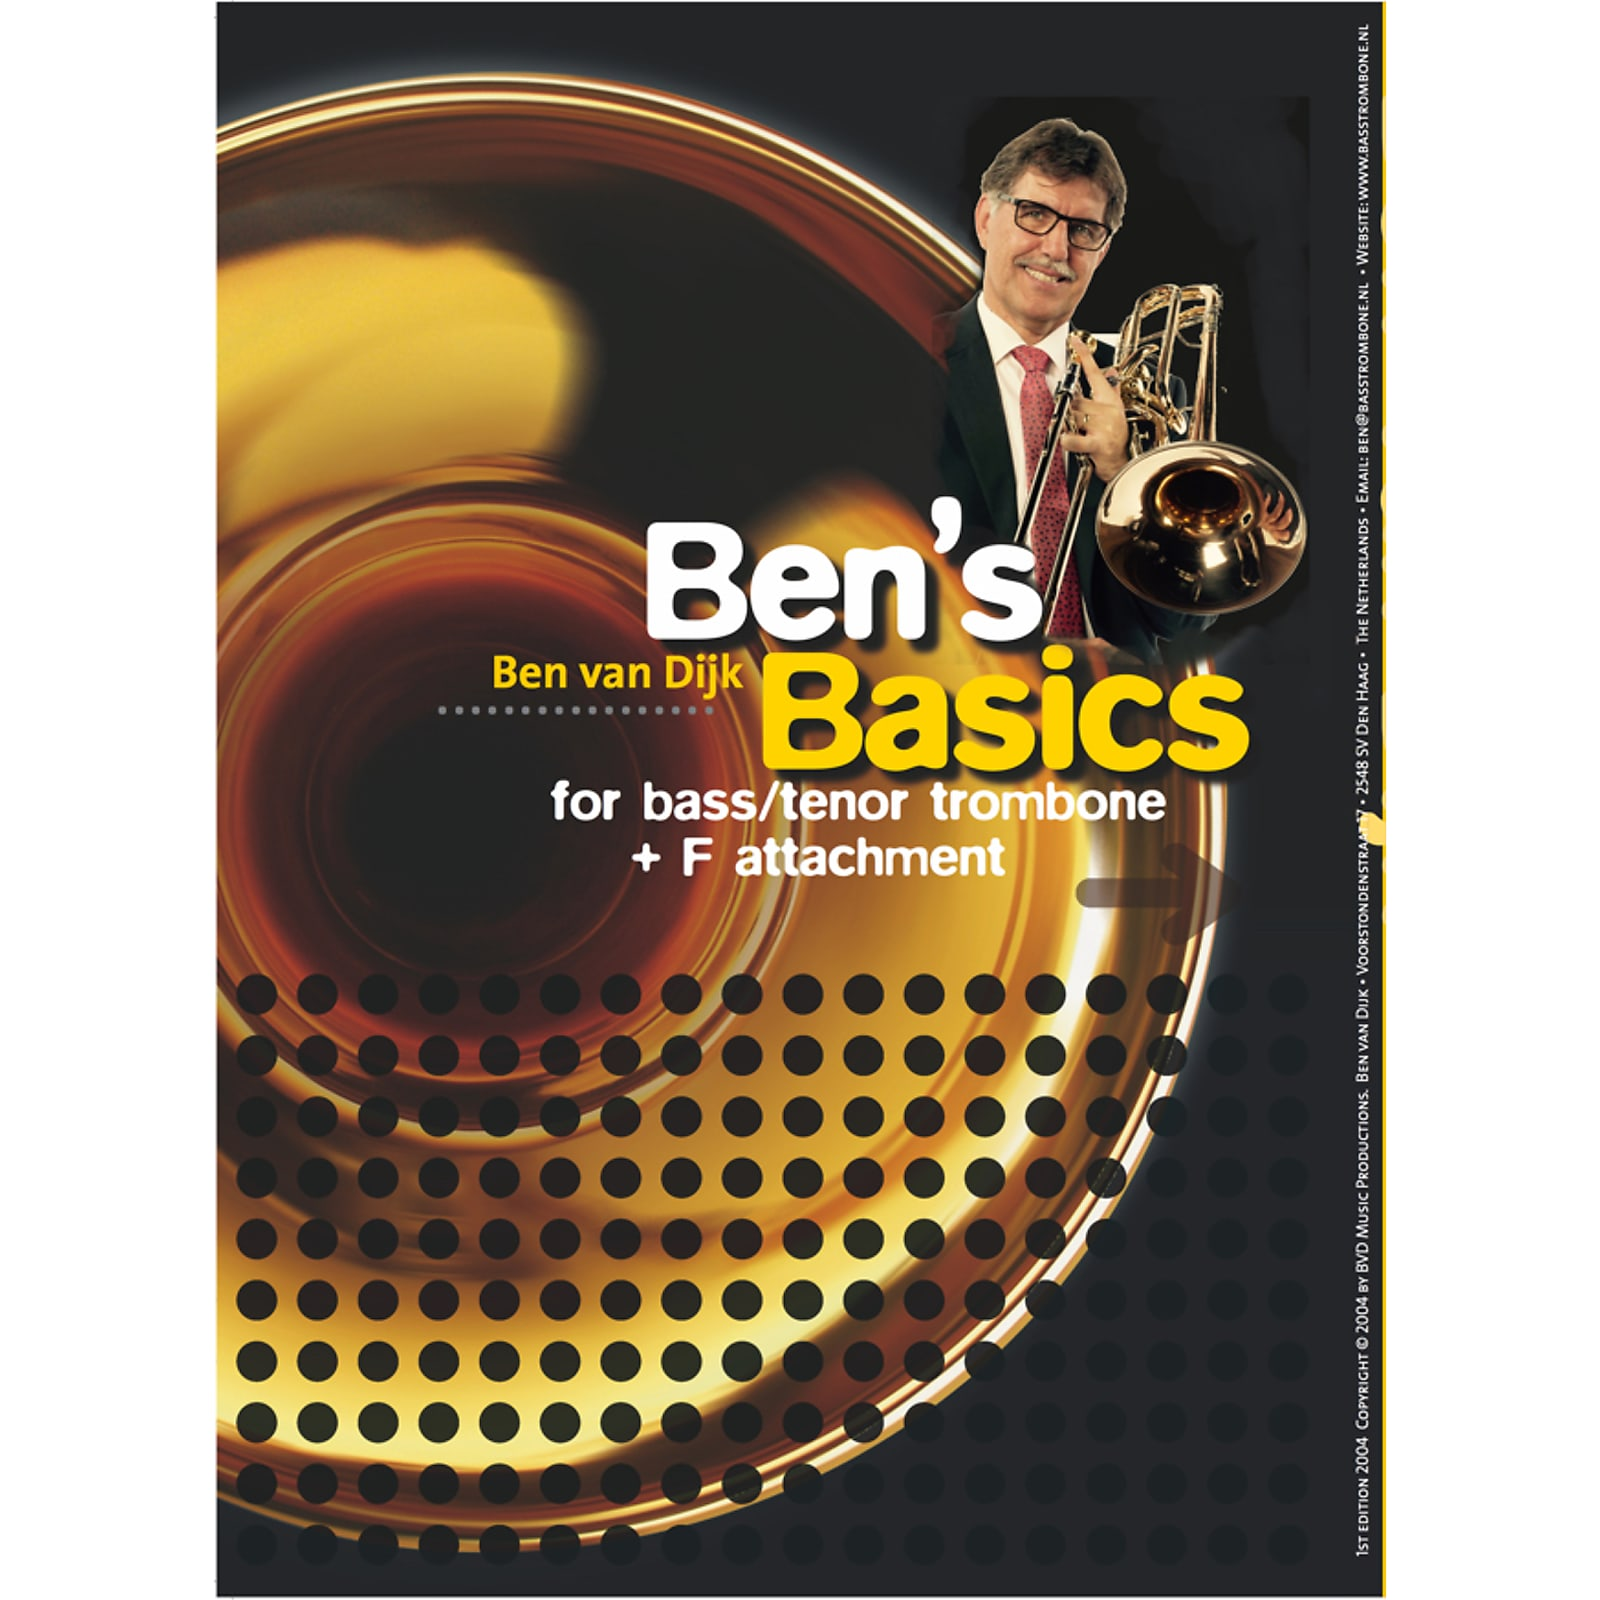 Ben van Dijk: Ben's Basics for Bass / Tenor Trombone